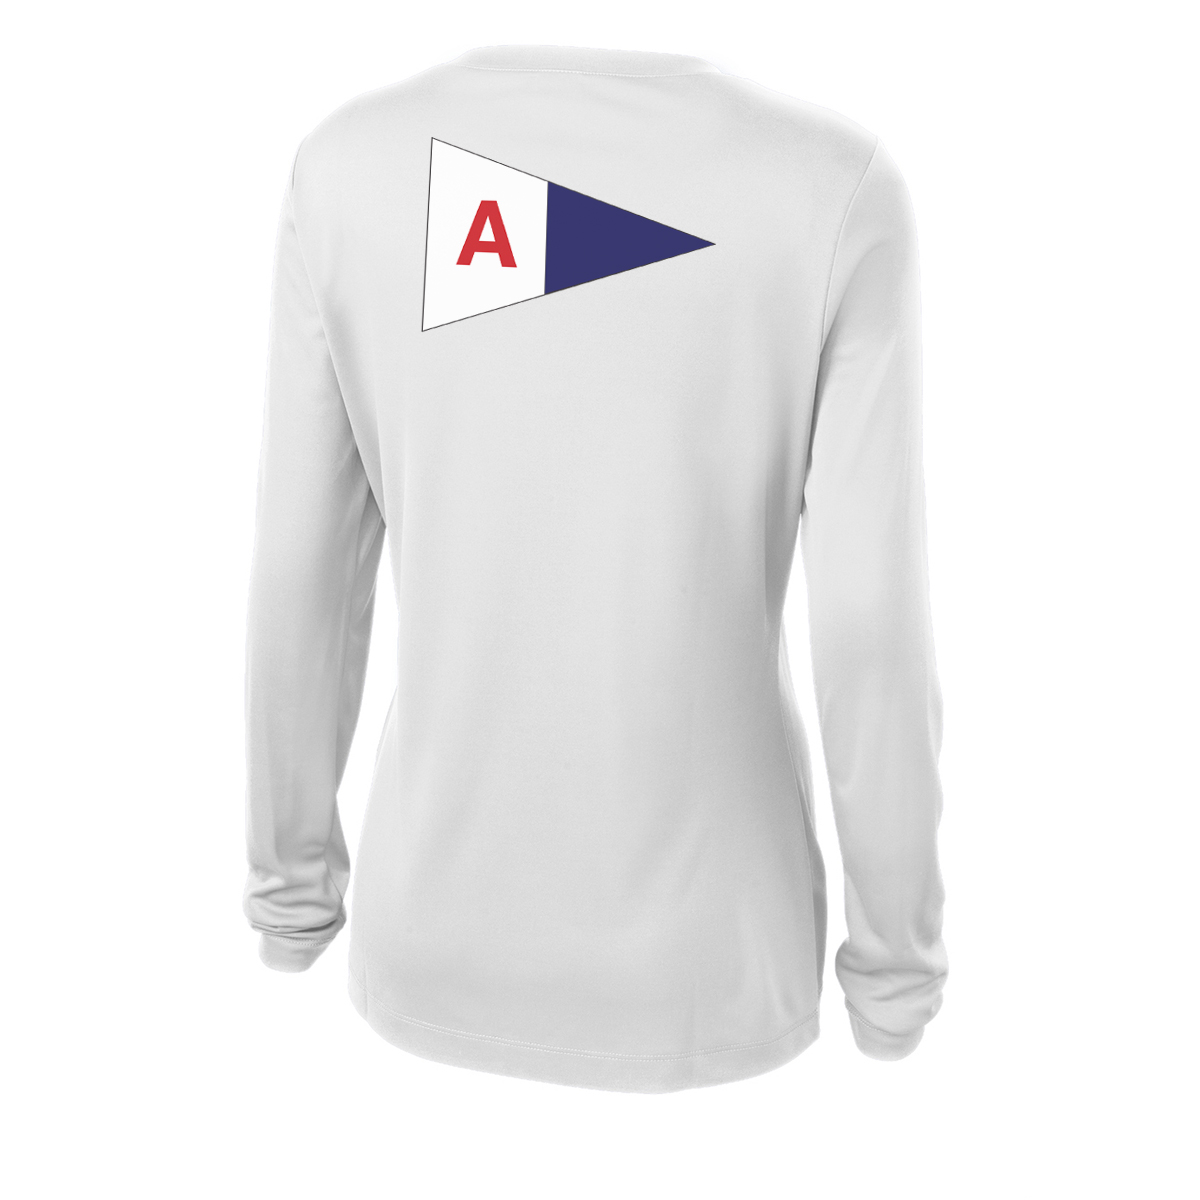 Arundel Yacht Club - Women's L/S Tech Tee